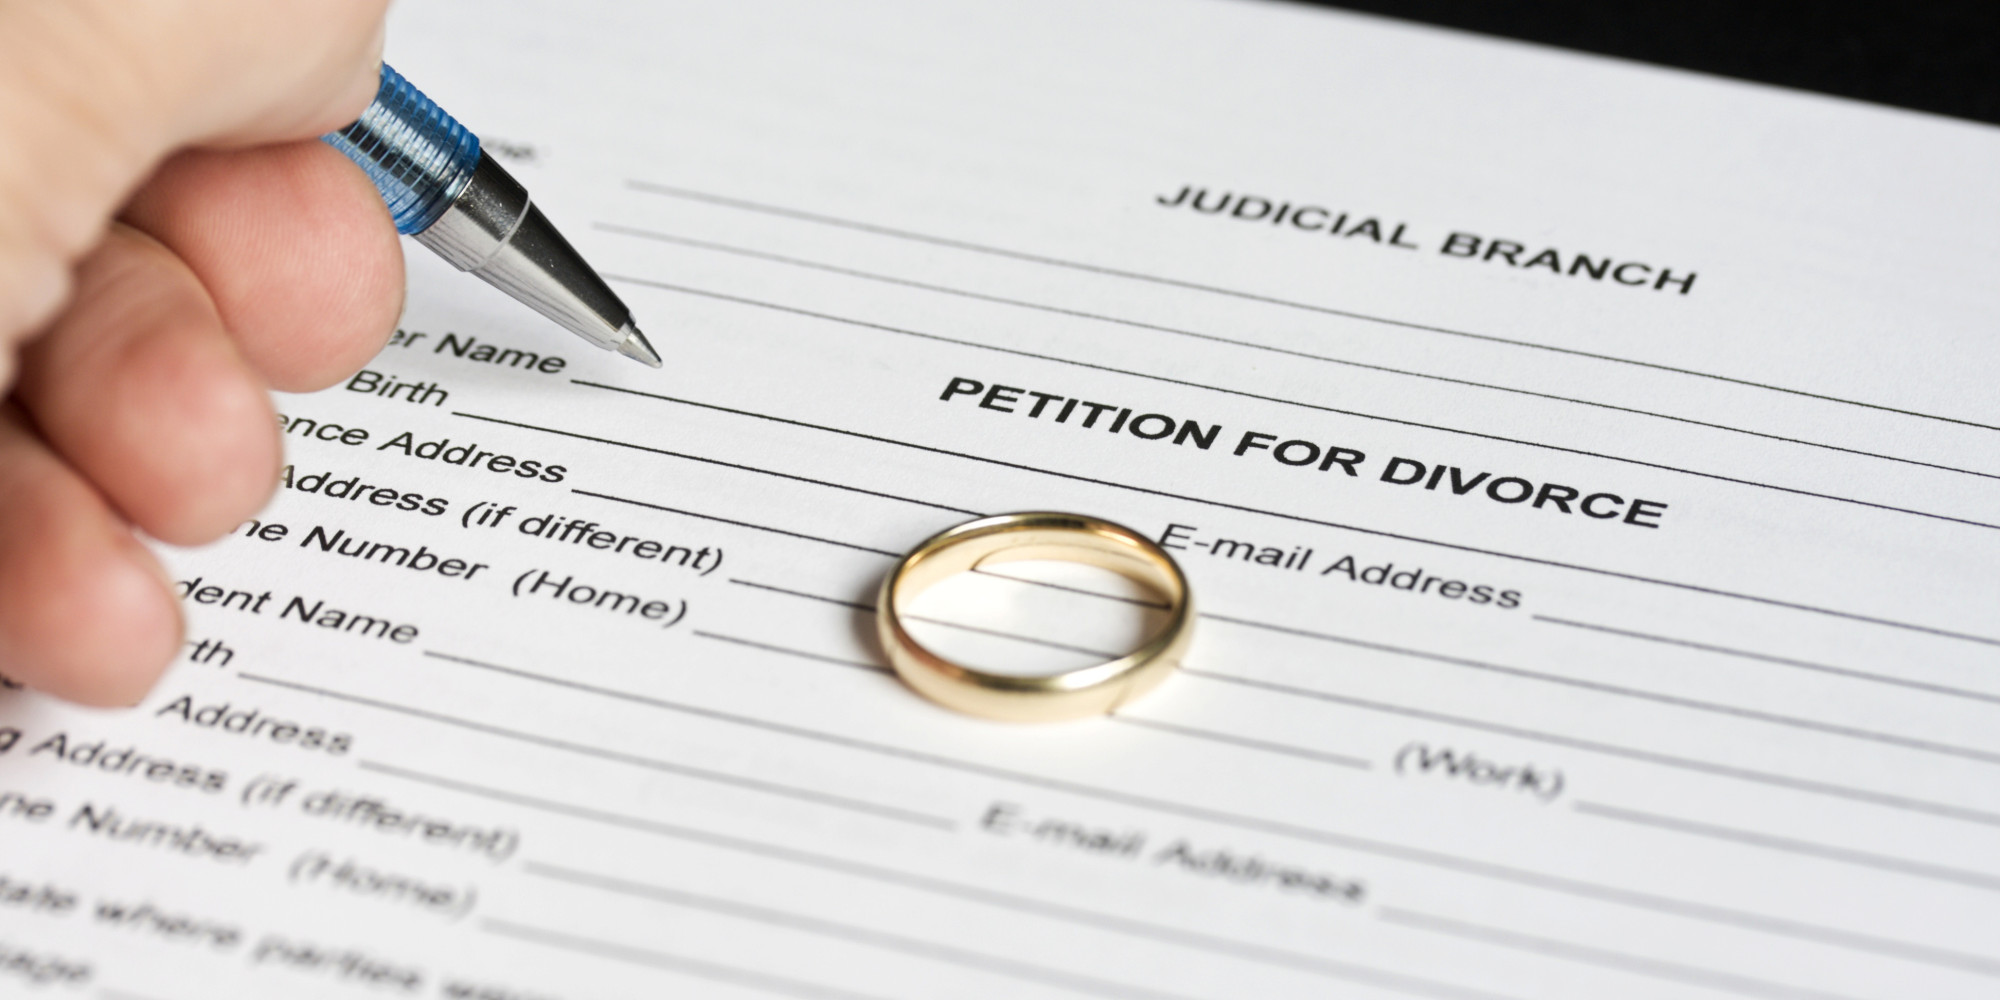 Dating after divorce papers are signed california